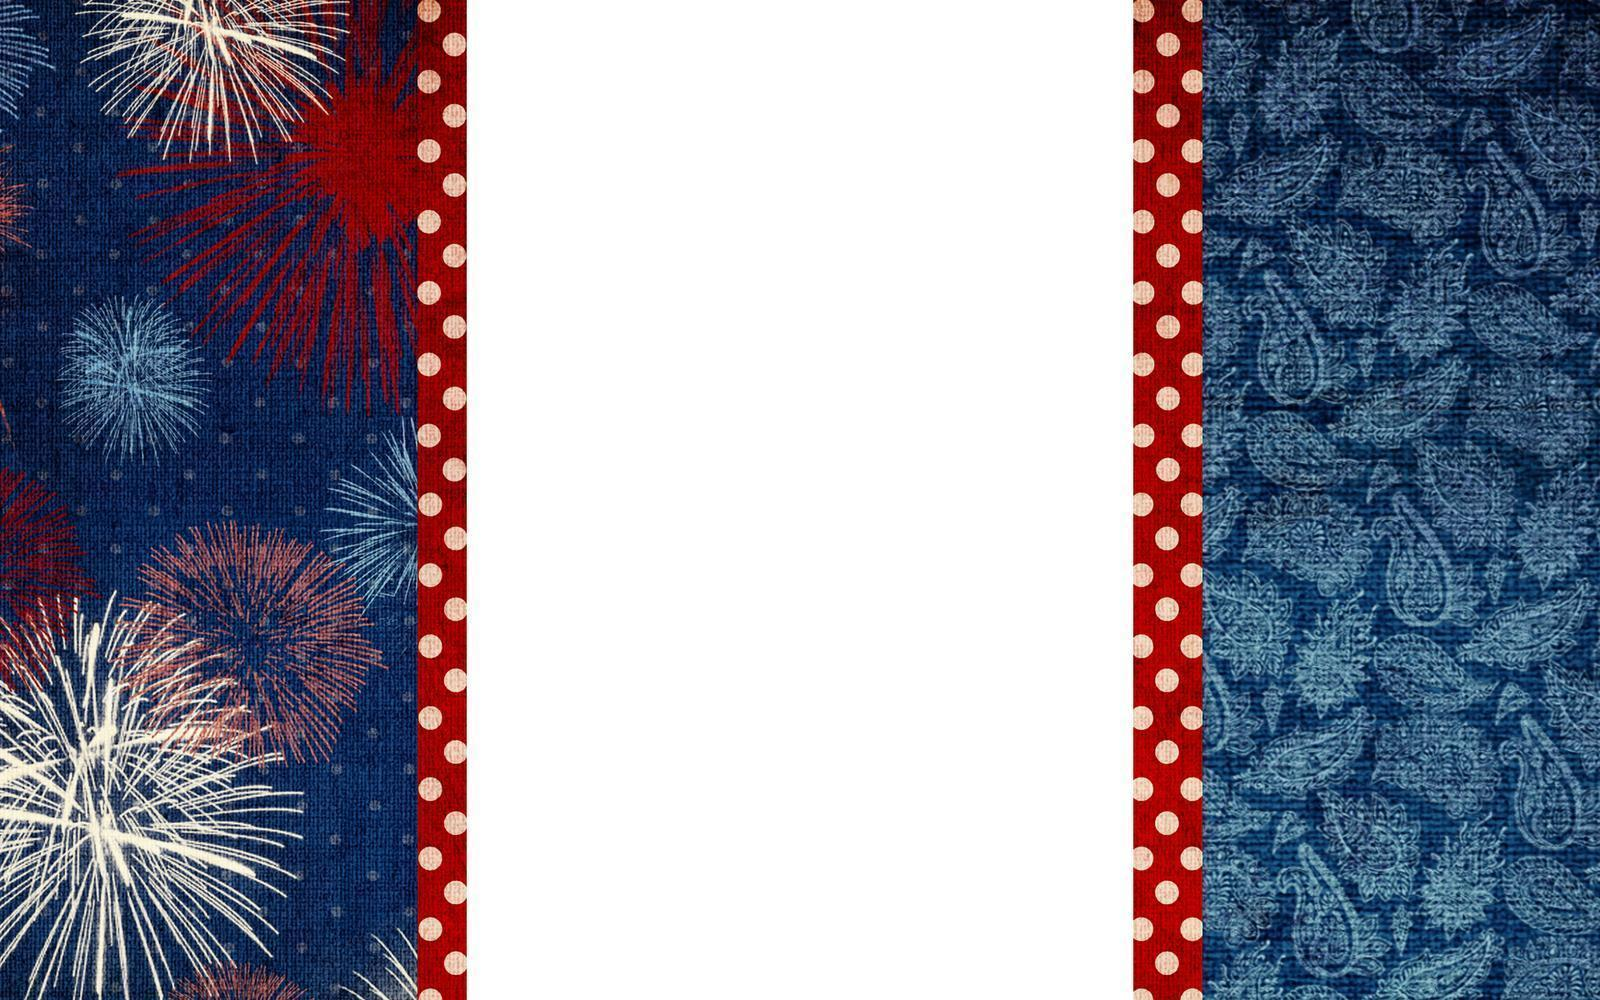 Elegant Custom Blogs - Free Designs: FREE July 4th / Independence ...